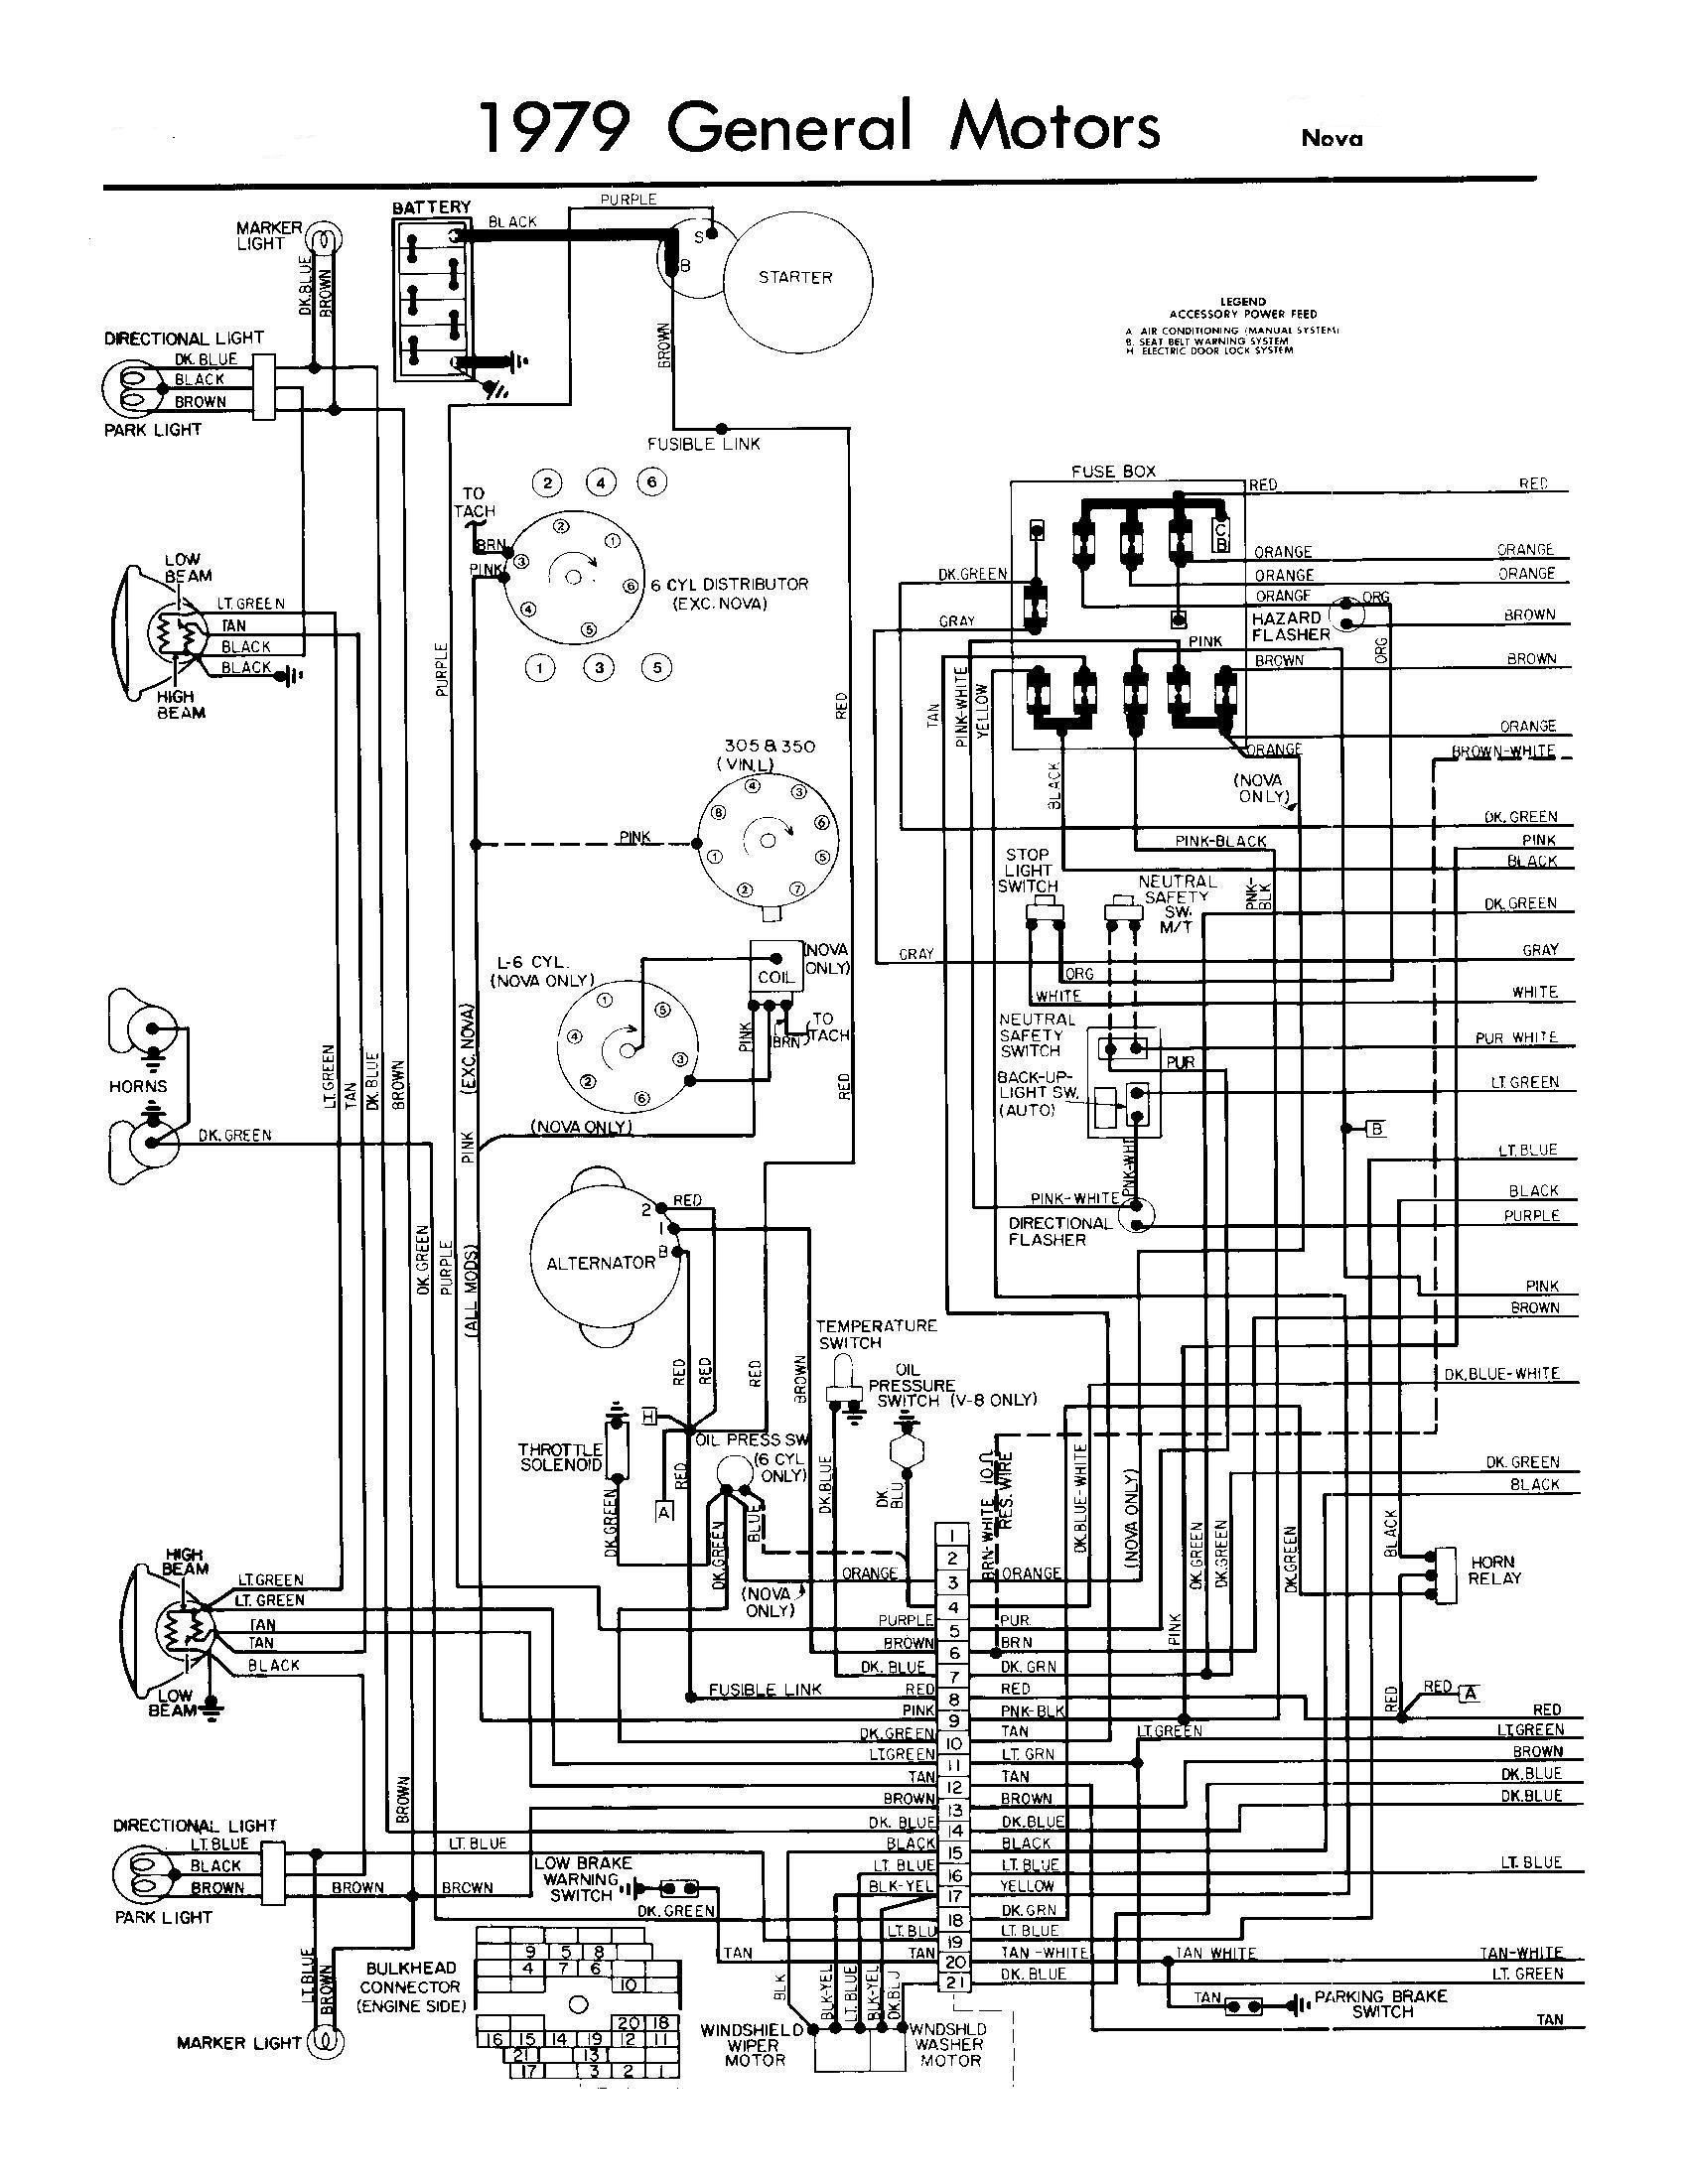 af30d80785d45bfeba8f1db47439920a 1979 chevy pickup wiring diagram 1979 free wiring diagrams 1979 Camaro Wiring Harness Diagram at fashall.co